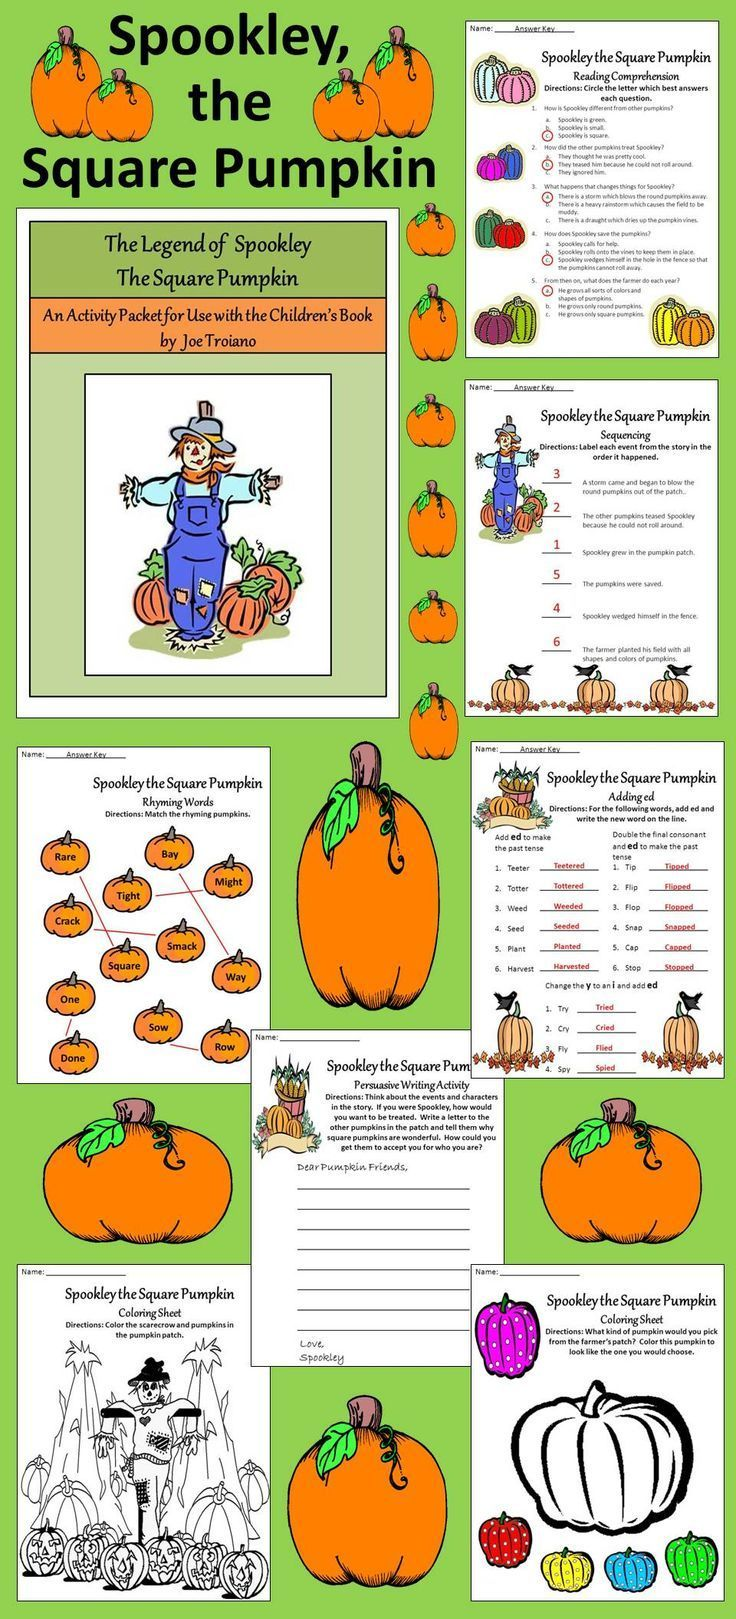 17 best images about halloween language arts ideas pumpkin activities spookley the square pumpkin book activities bundle